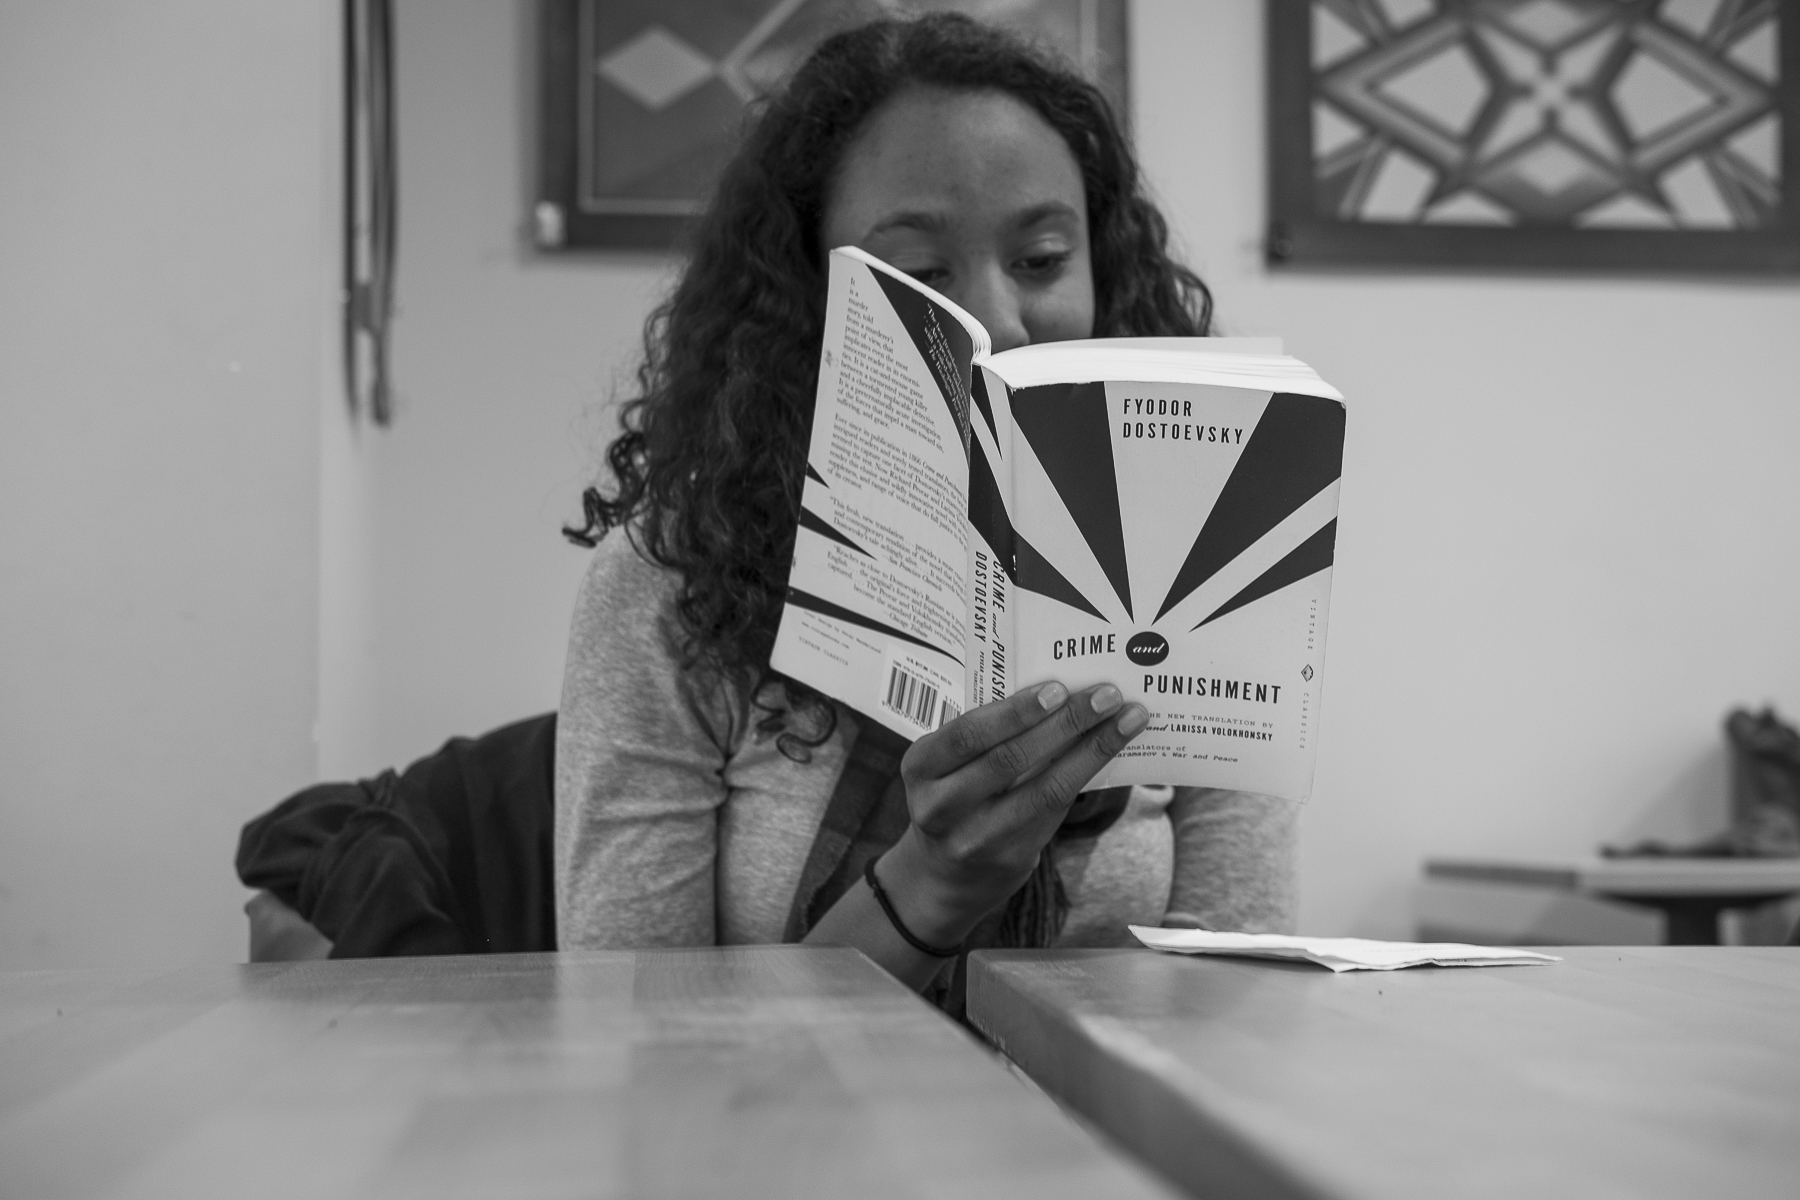 Nadia Celestine, a senior at Green Meadow Waldorf School in Chestnut Ridge, reads a book assigned in one of her classes. Nadia's mother is Turkish and her father is Haitian American. Nadia and her family are long-time members of the Jerrahi Order of America.